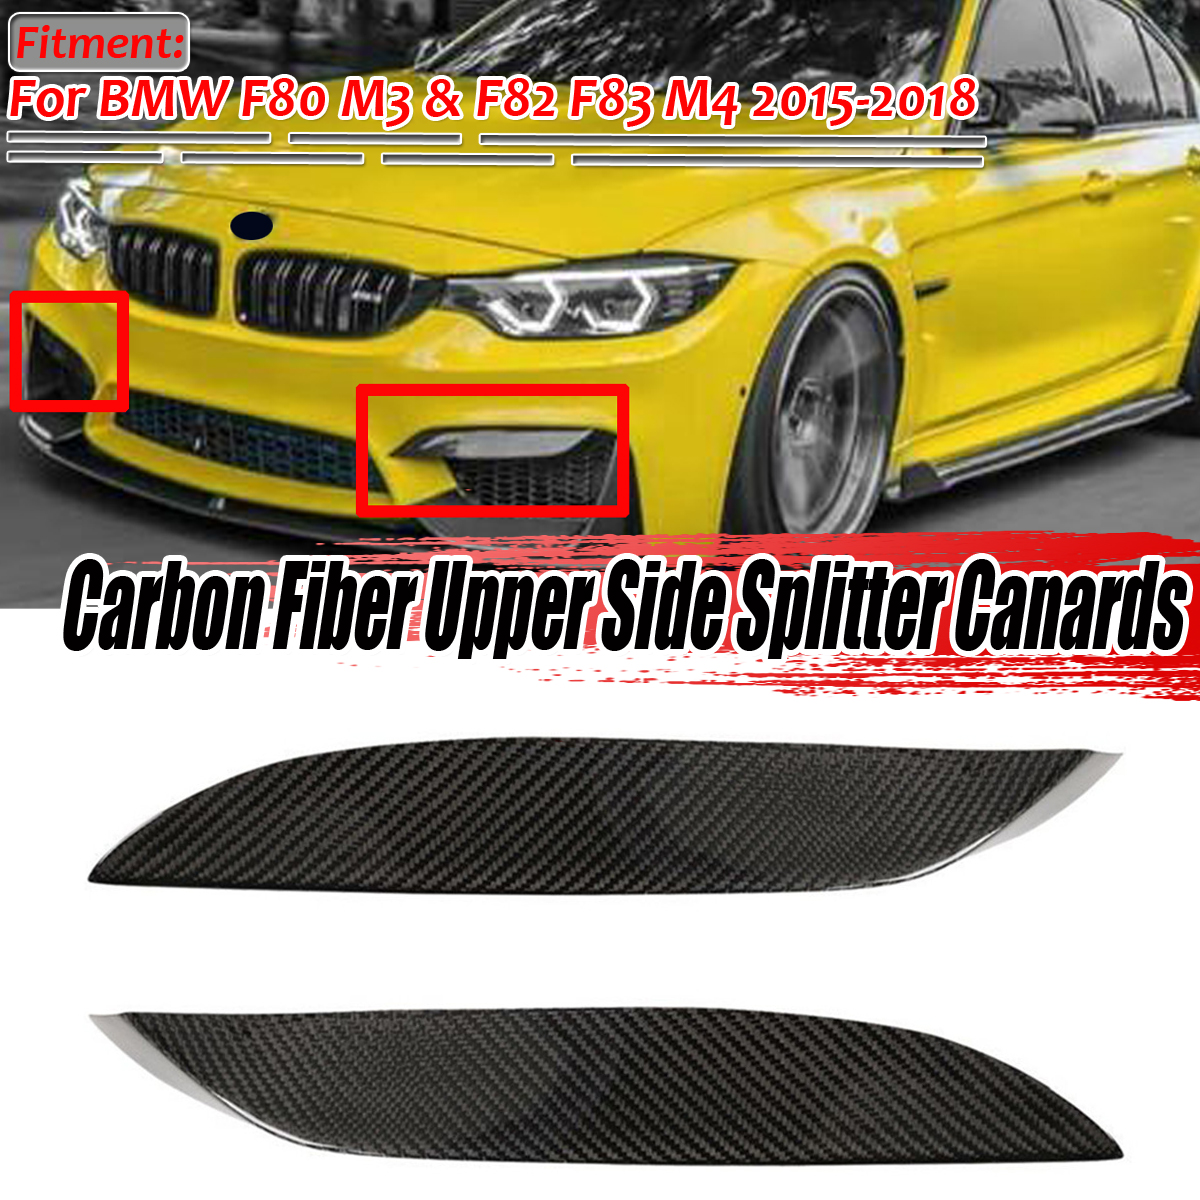 2x F80 Real Carbon Fiber Car Front Upper Bumper Lip Diffuser Splitter Canards Lip Protector For BMW F80 M3 F82 F83 M4 2015-2018 image